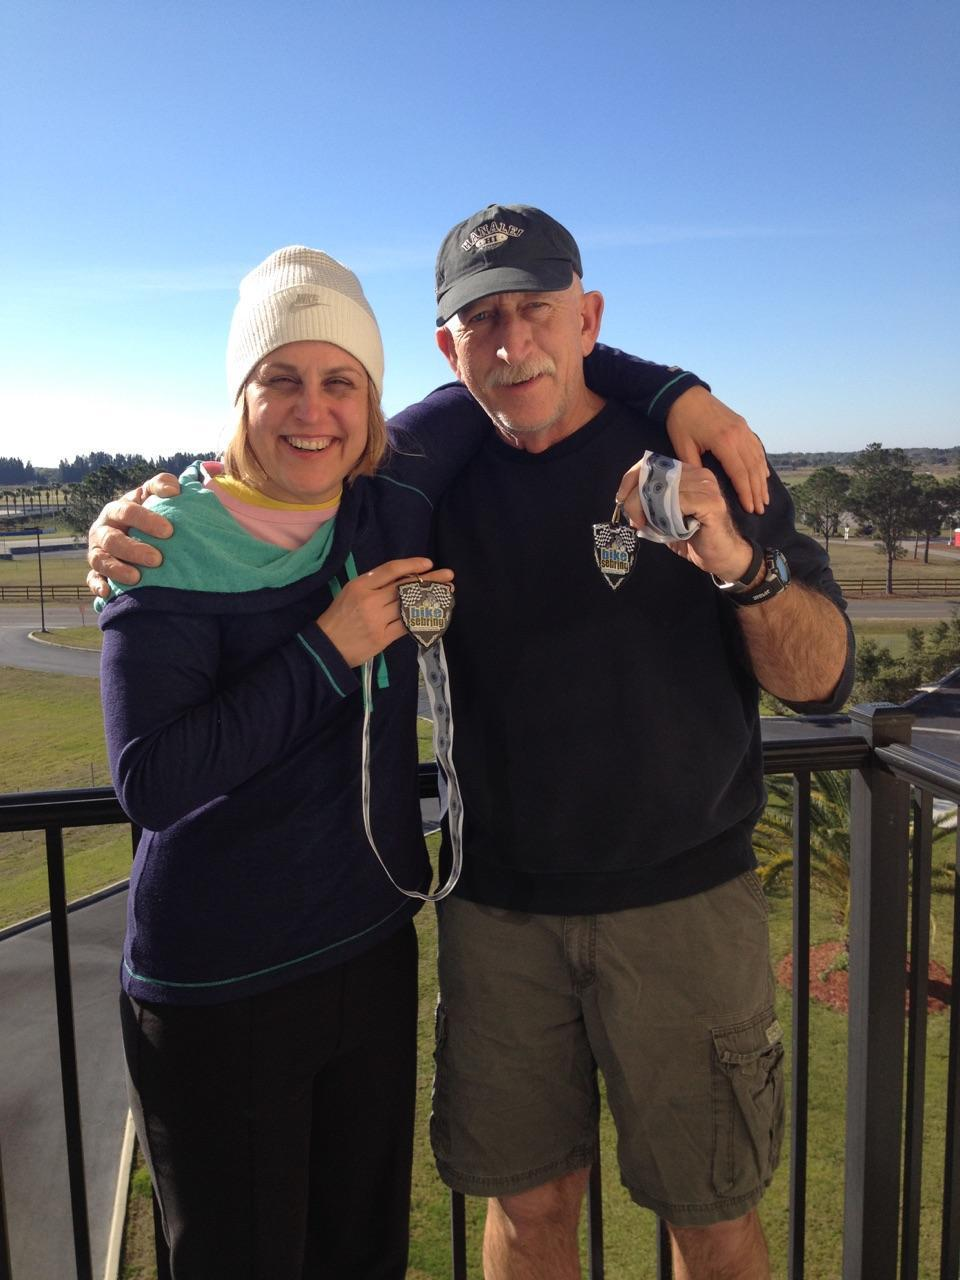 Cassie and Wally after winning their age groups at the Florida Sebring 12 hour bike race